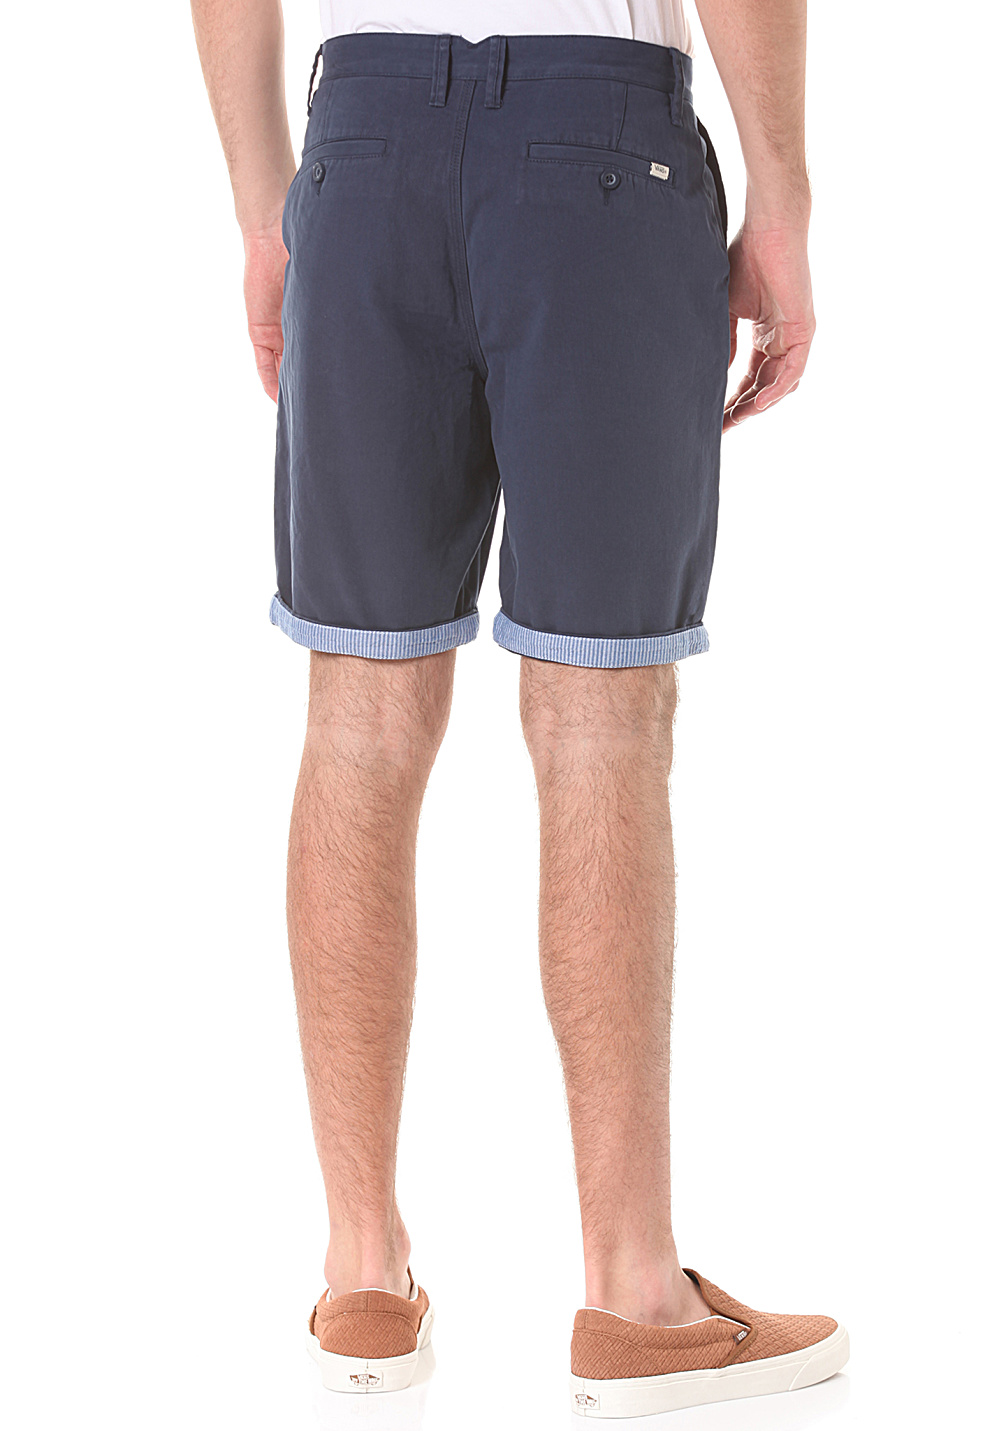 b058cec77b ... Vans Excerpt Cuff - Chino Shorts for Men - Blue. Back to Overview. 1   2  3  4. Previous. Next